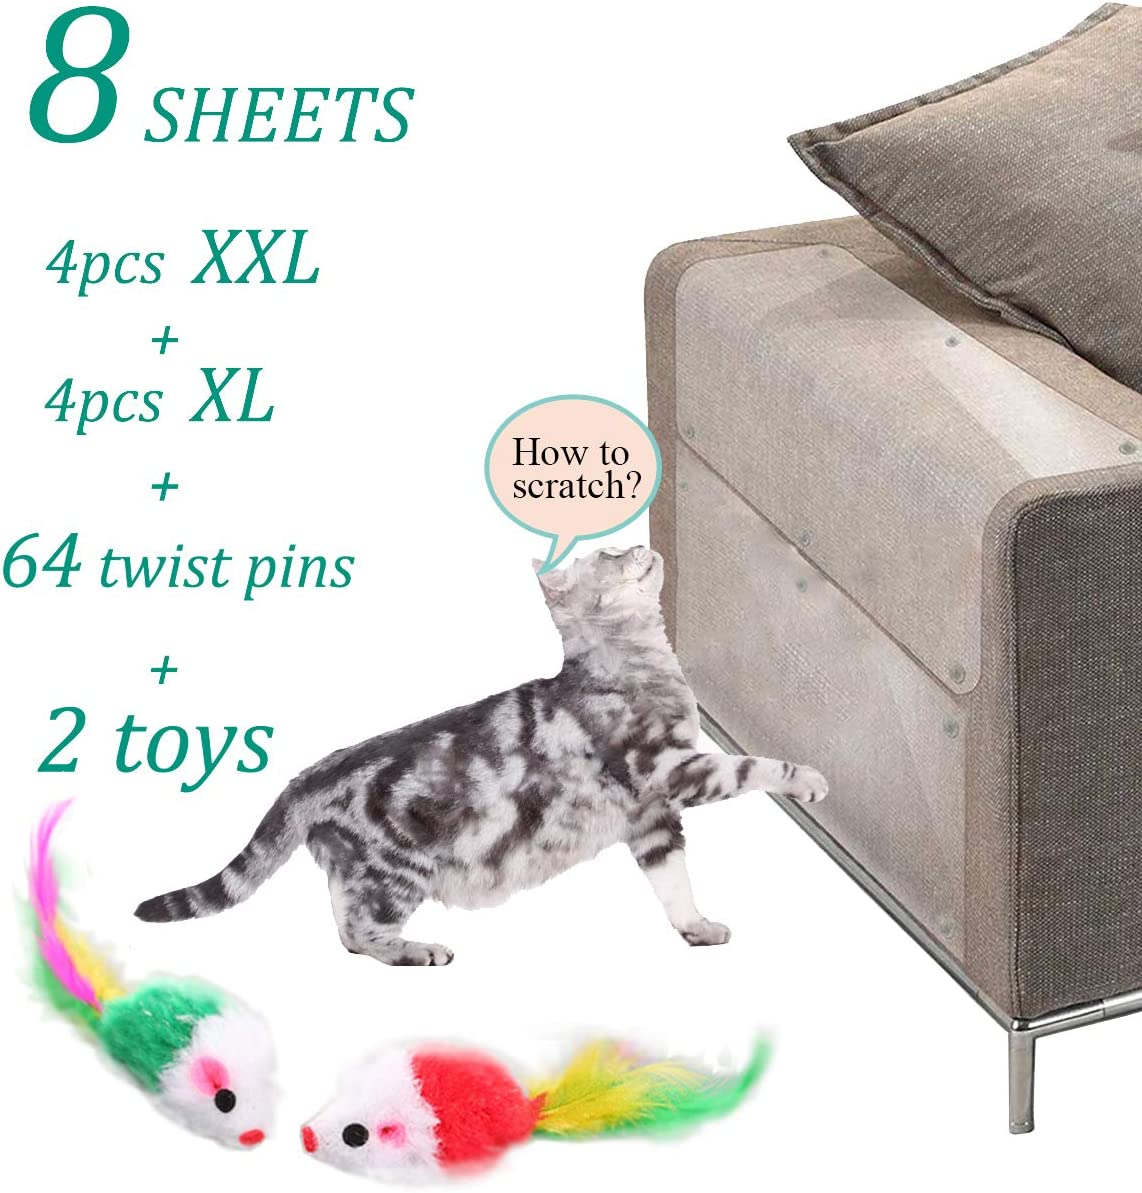 Cat Deterrent Tape, Cat Scratch Deterrent Products, Scratch Protection Tapes for Pet, an-ti Pet Scratch for Couch, Furniture Protector from Cats(8 Pcs)